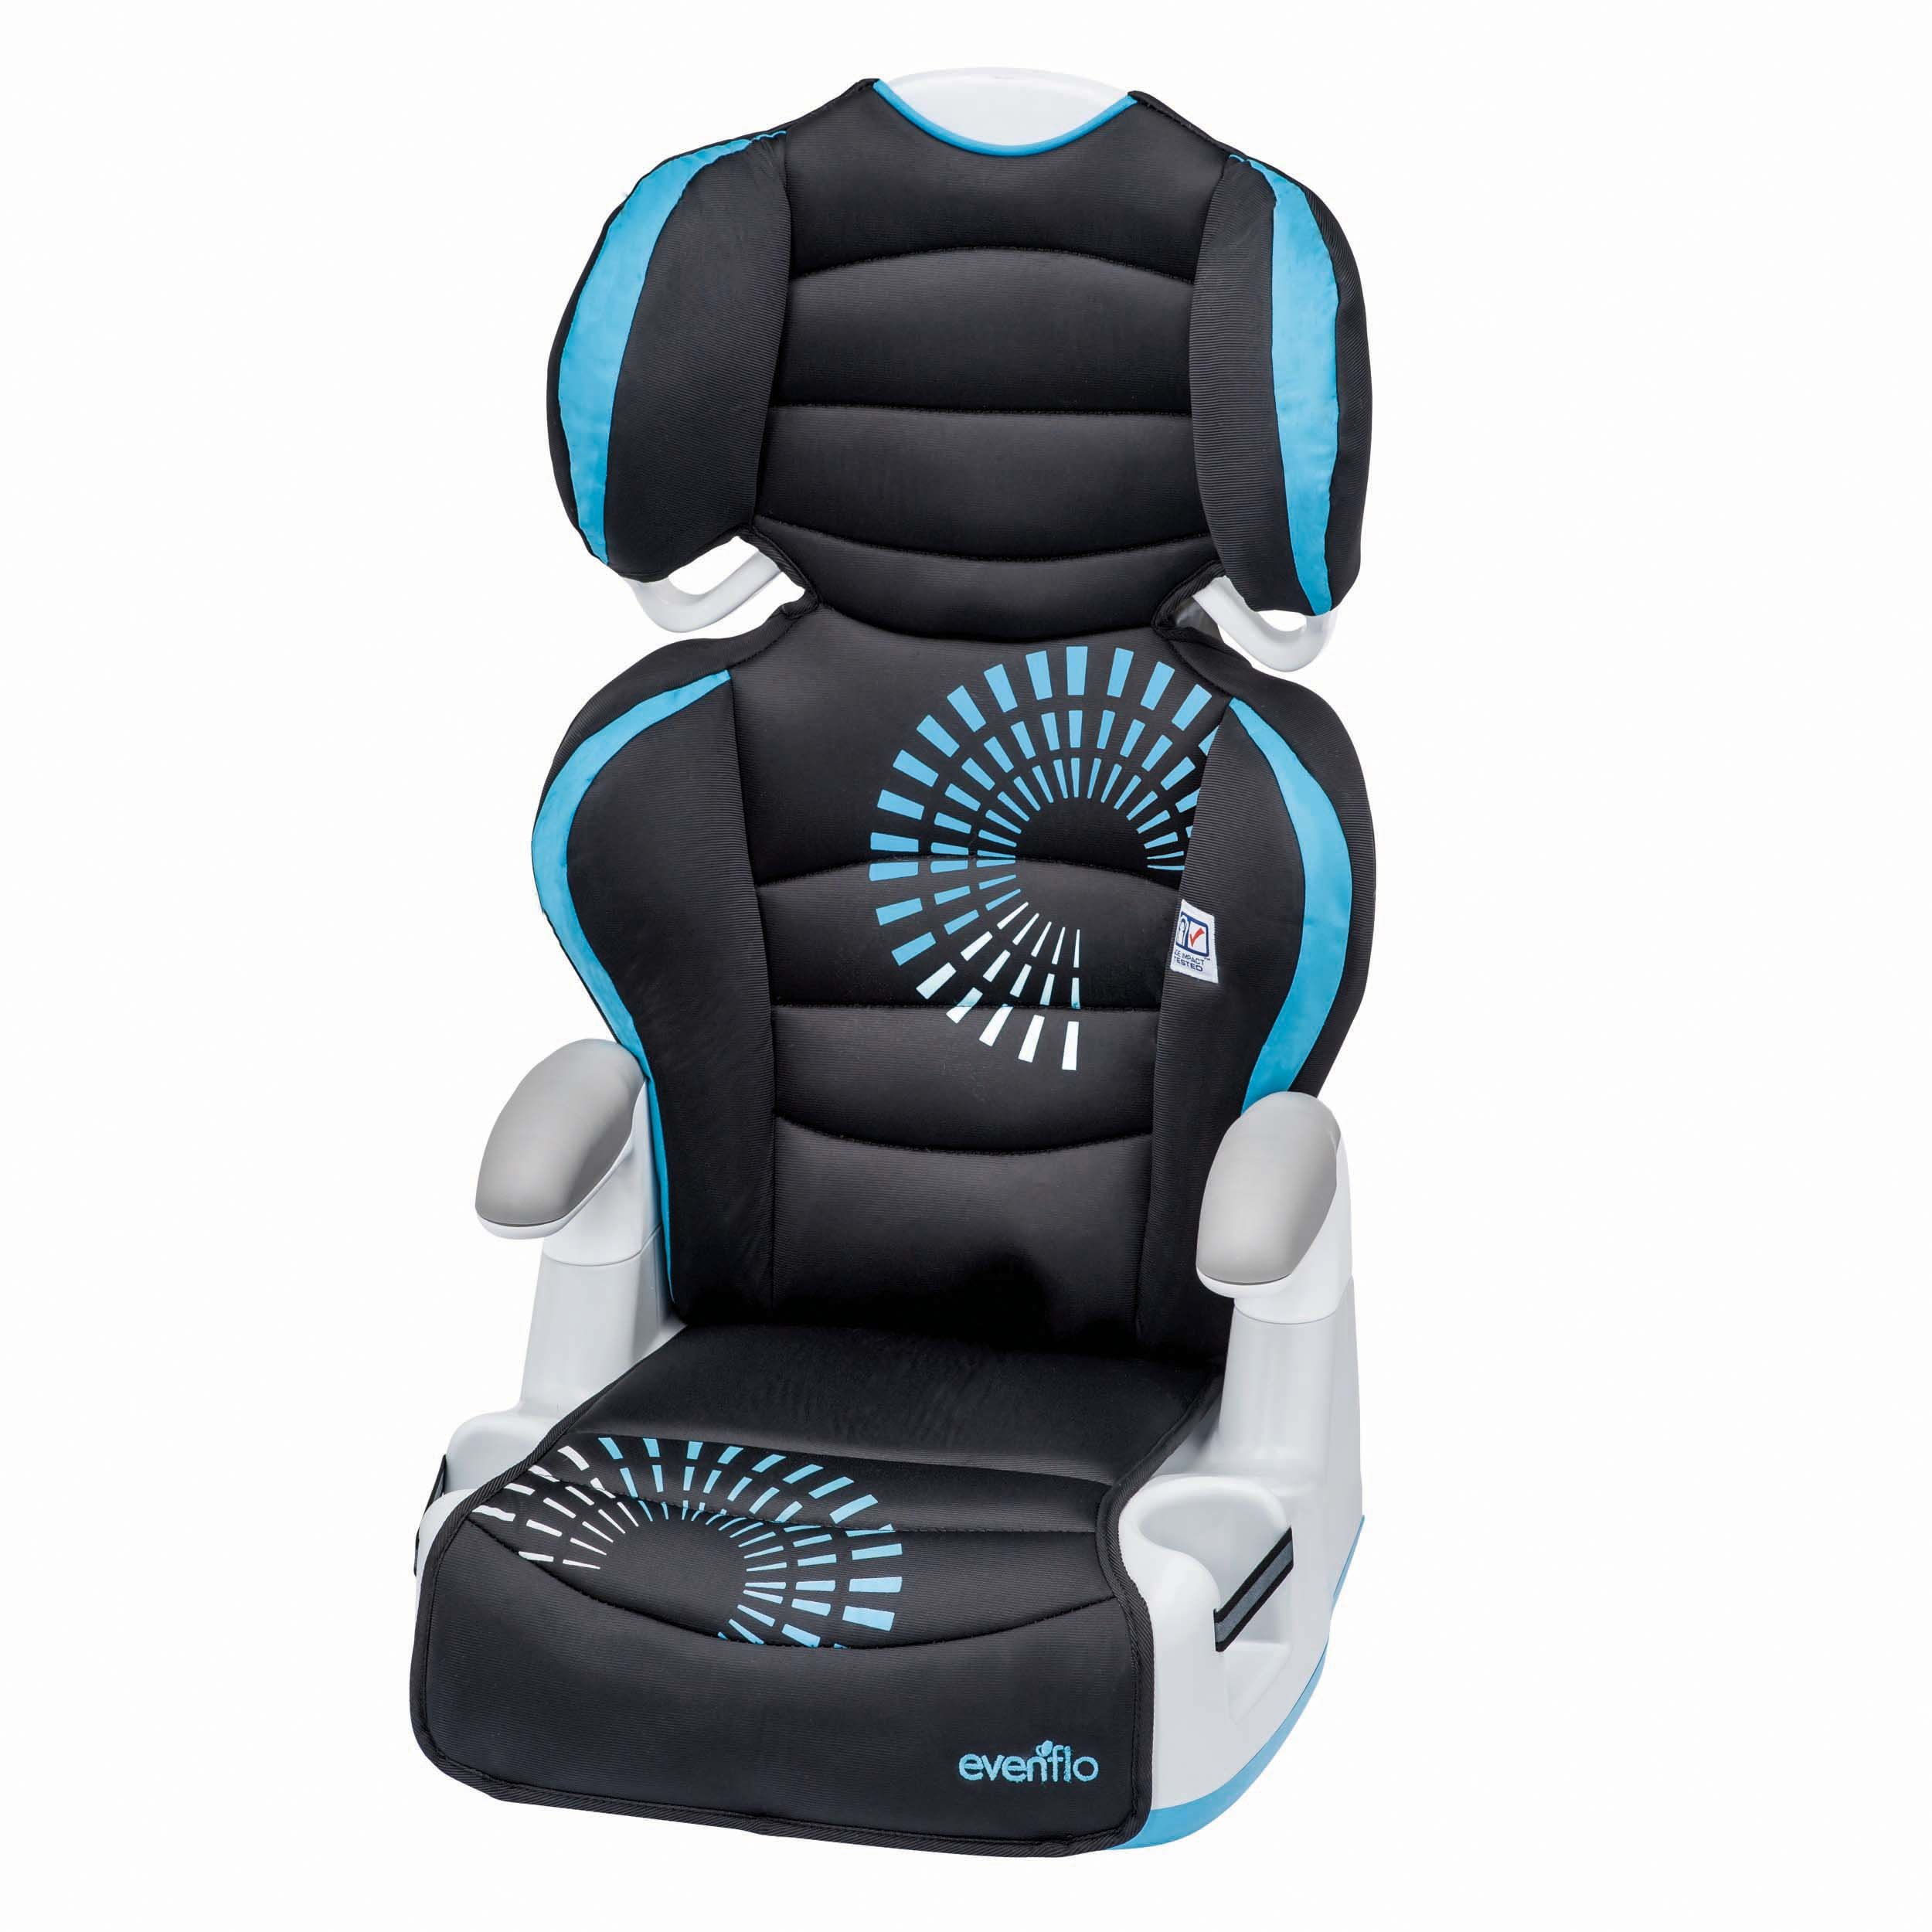 Amazon.com : Evenflo Amp High Back Booster Car Seat, Carrissa ...